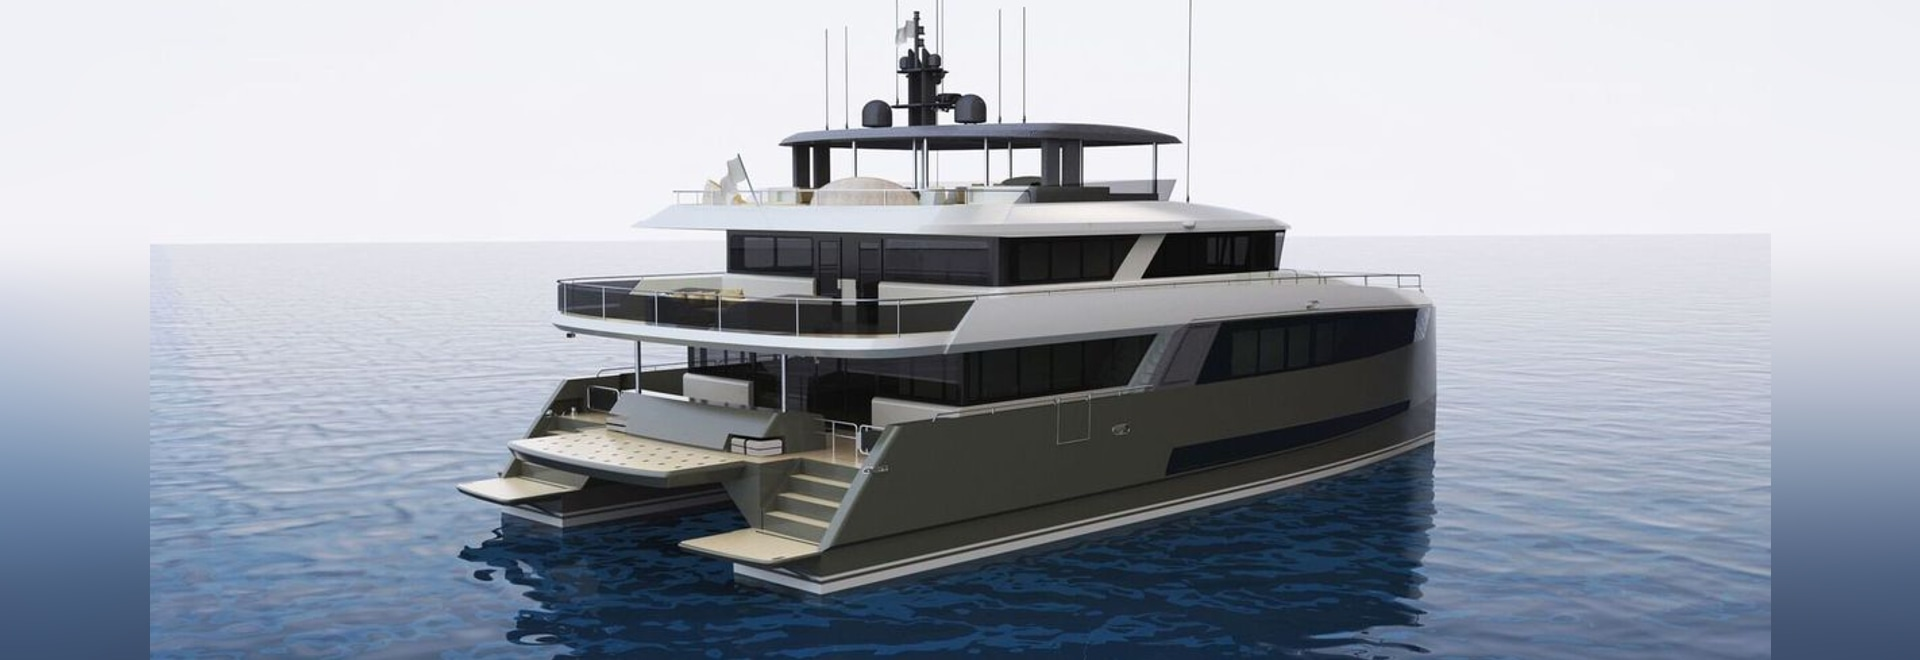 Behind the scenes of the new Amasea 84 design